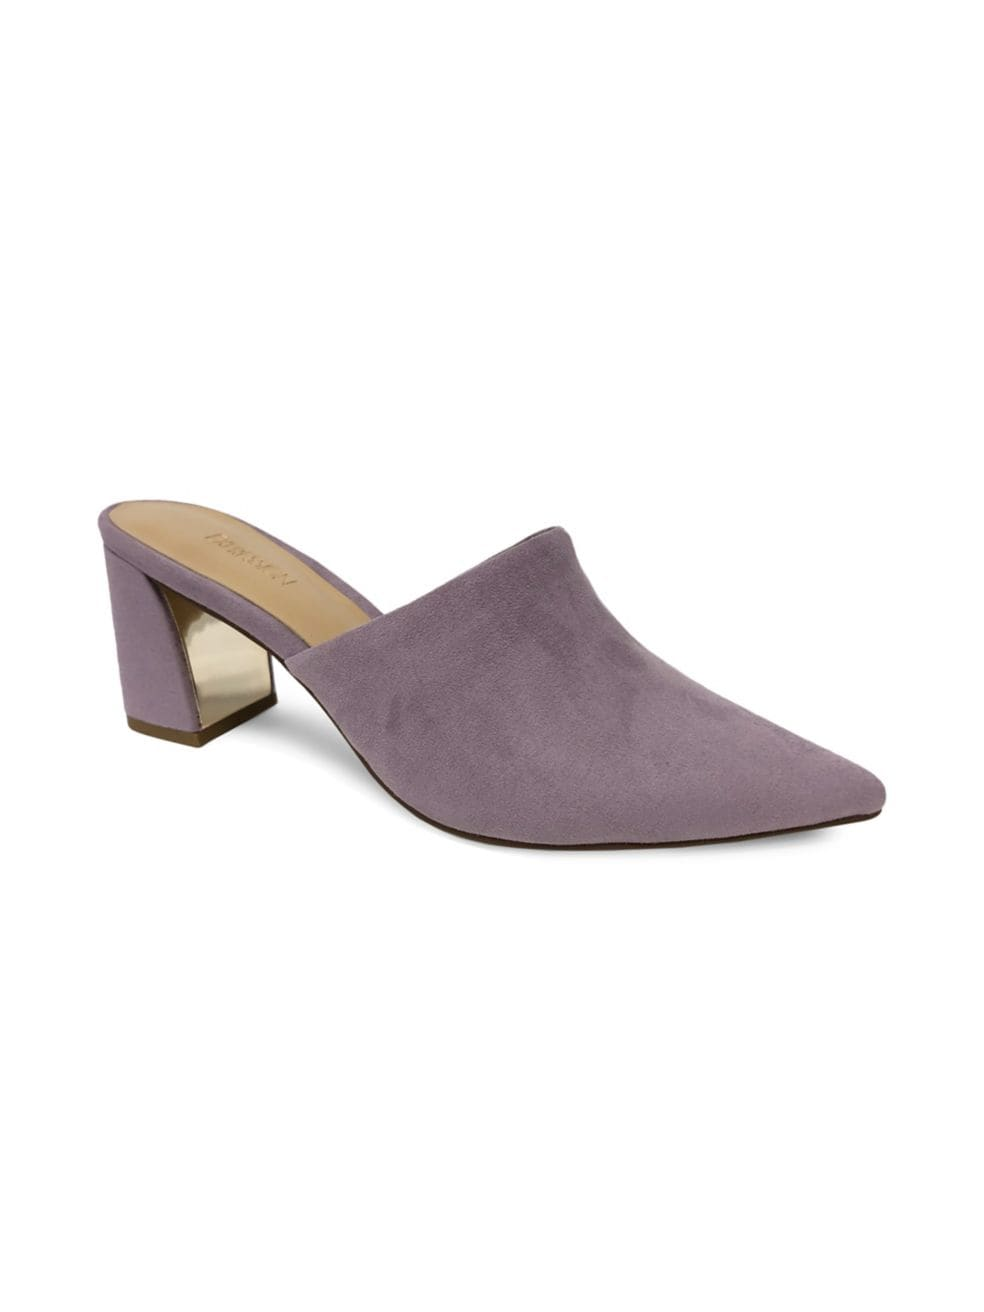 EXPRESSION. Thea Rose Dress Mules.